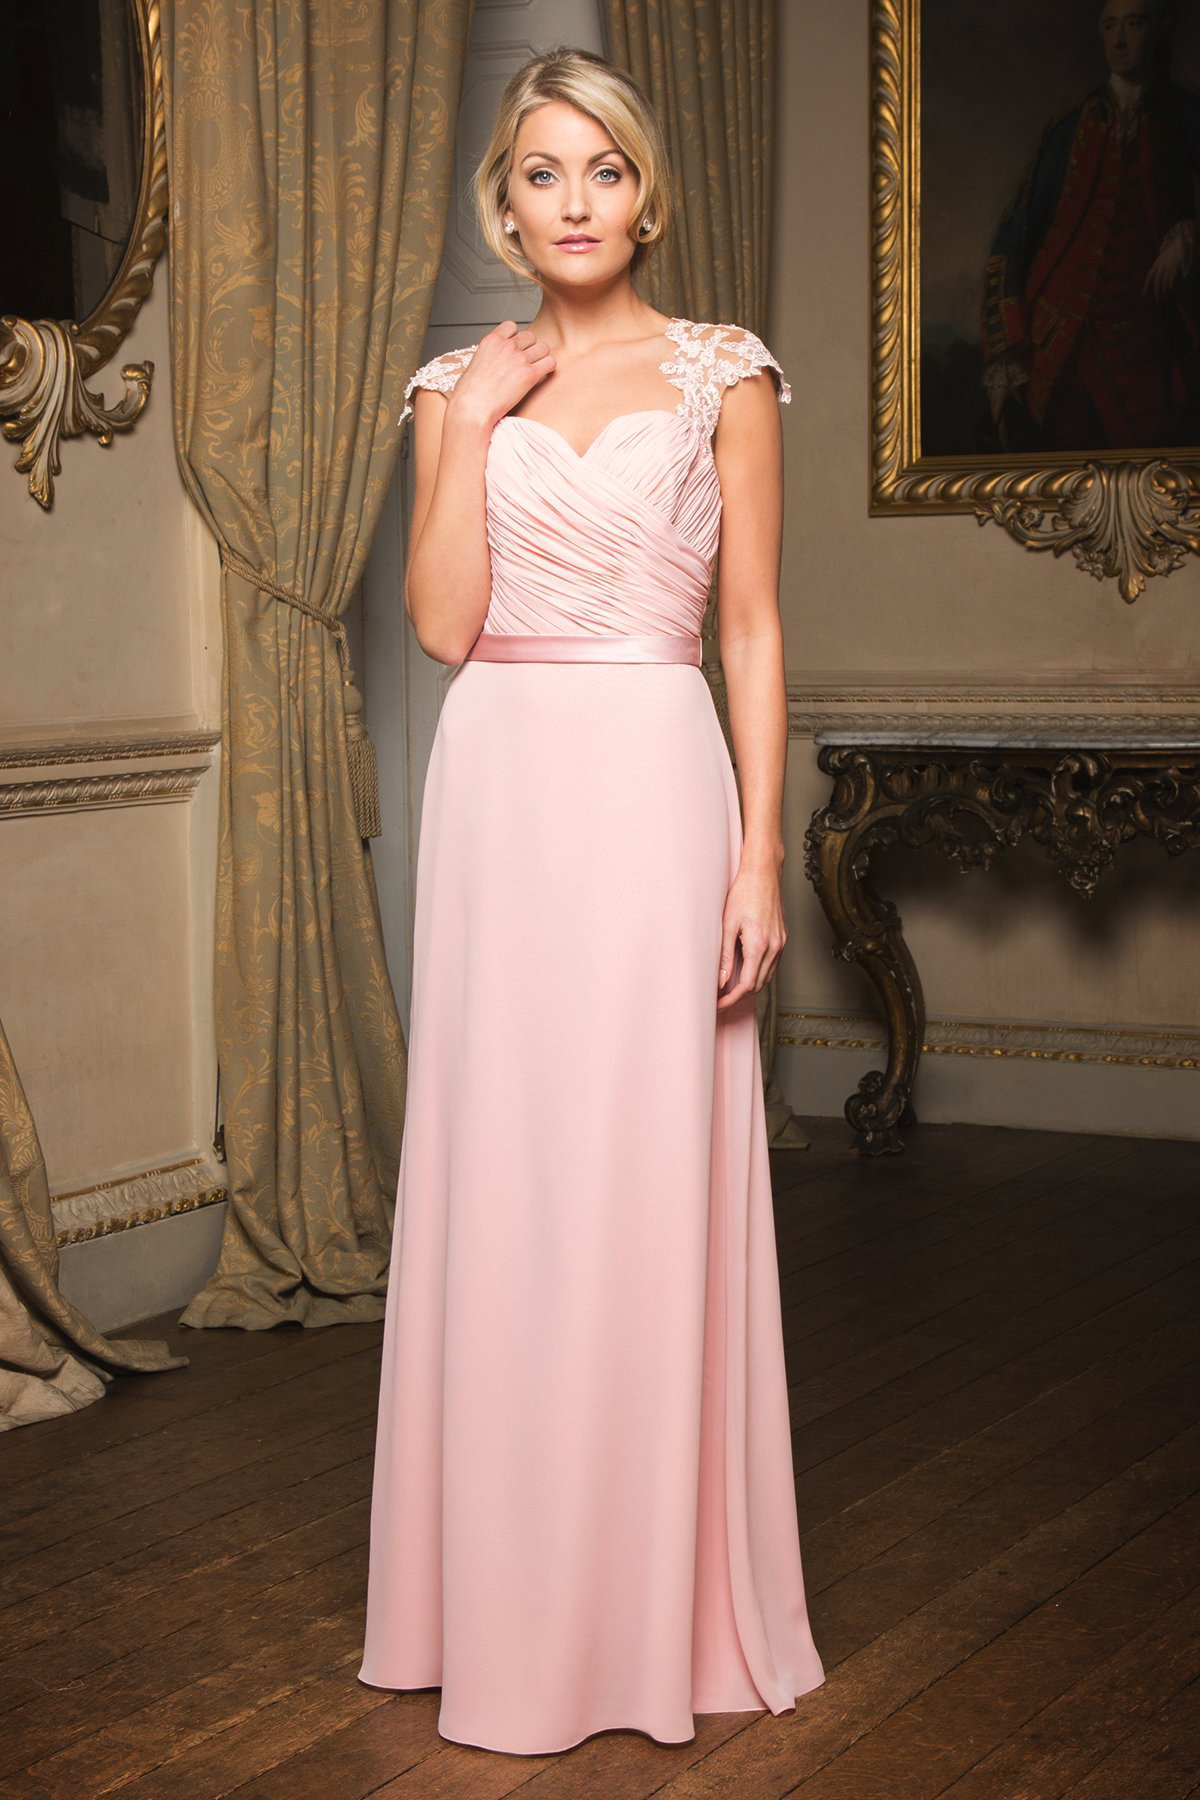 Bridesmaid dresses galore at Special Day! - Love Our Wedding